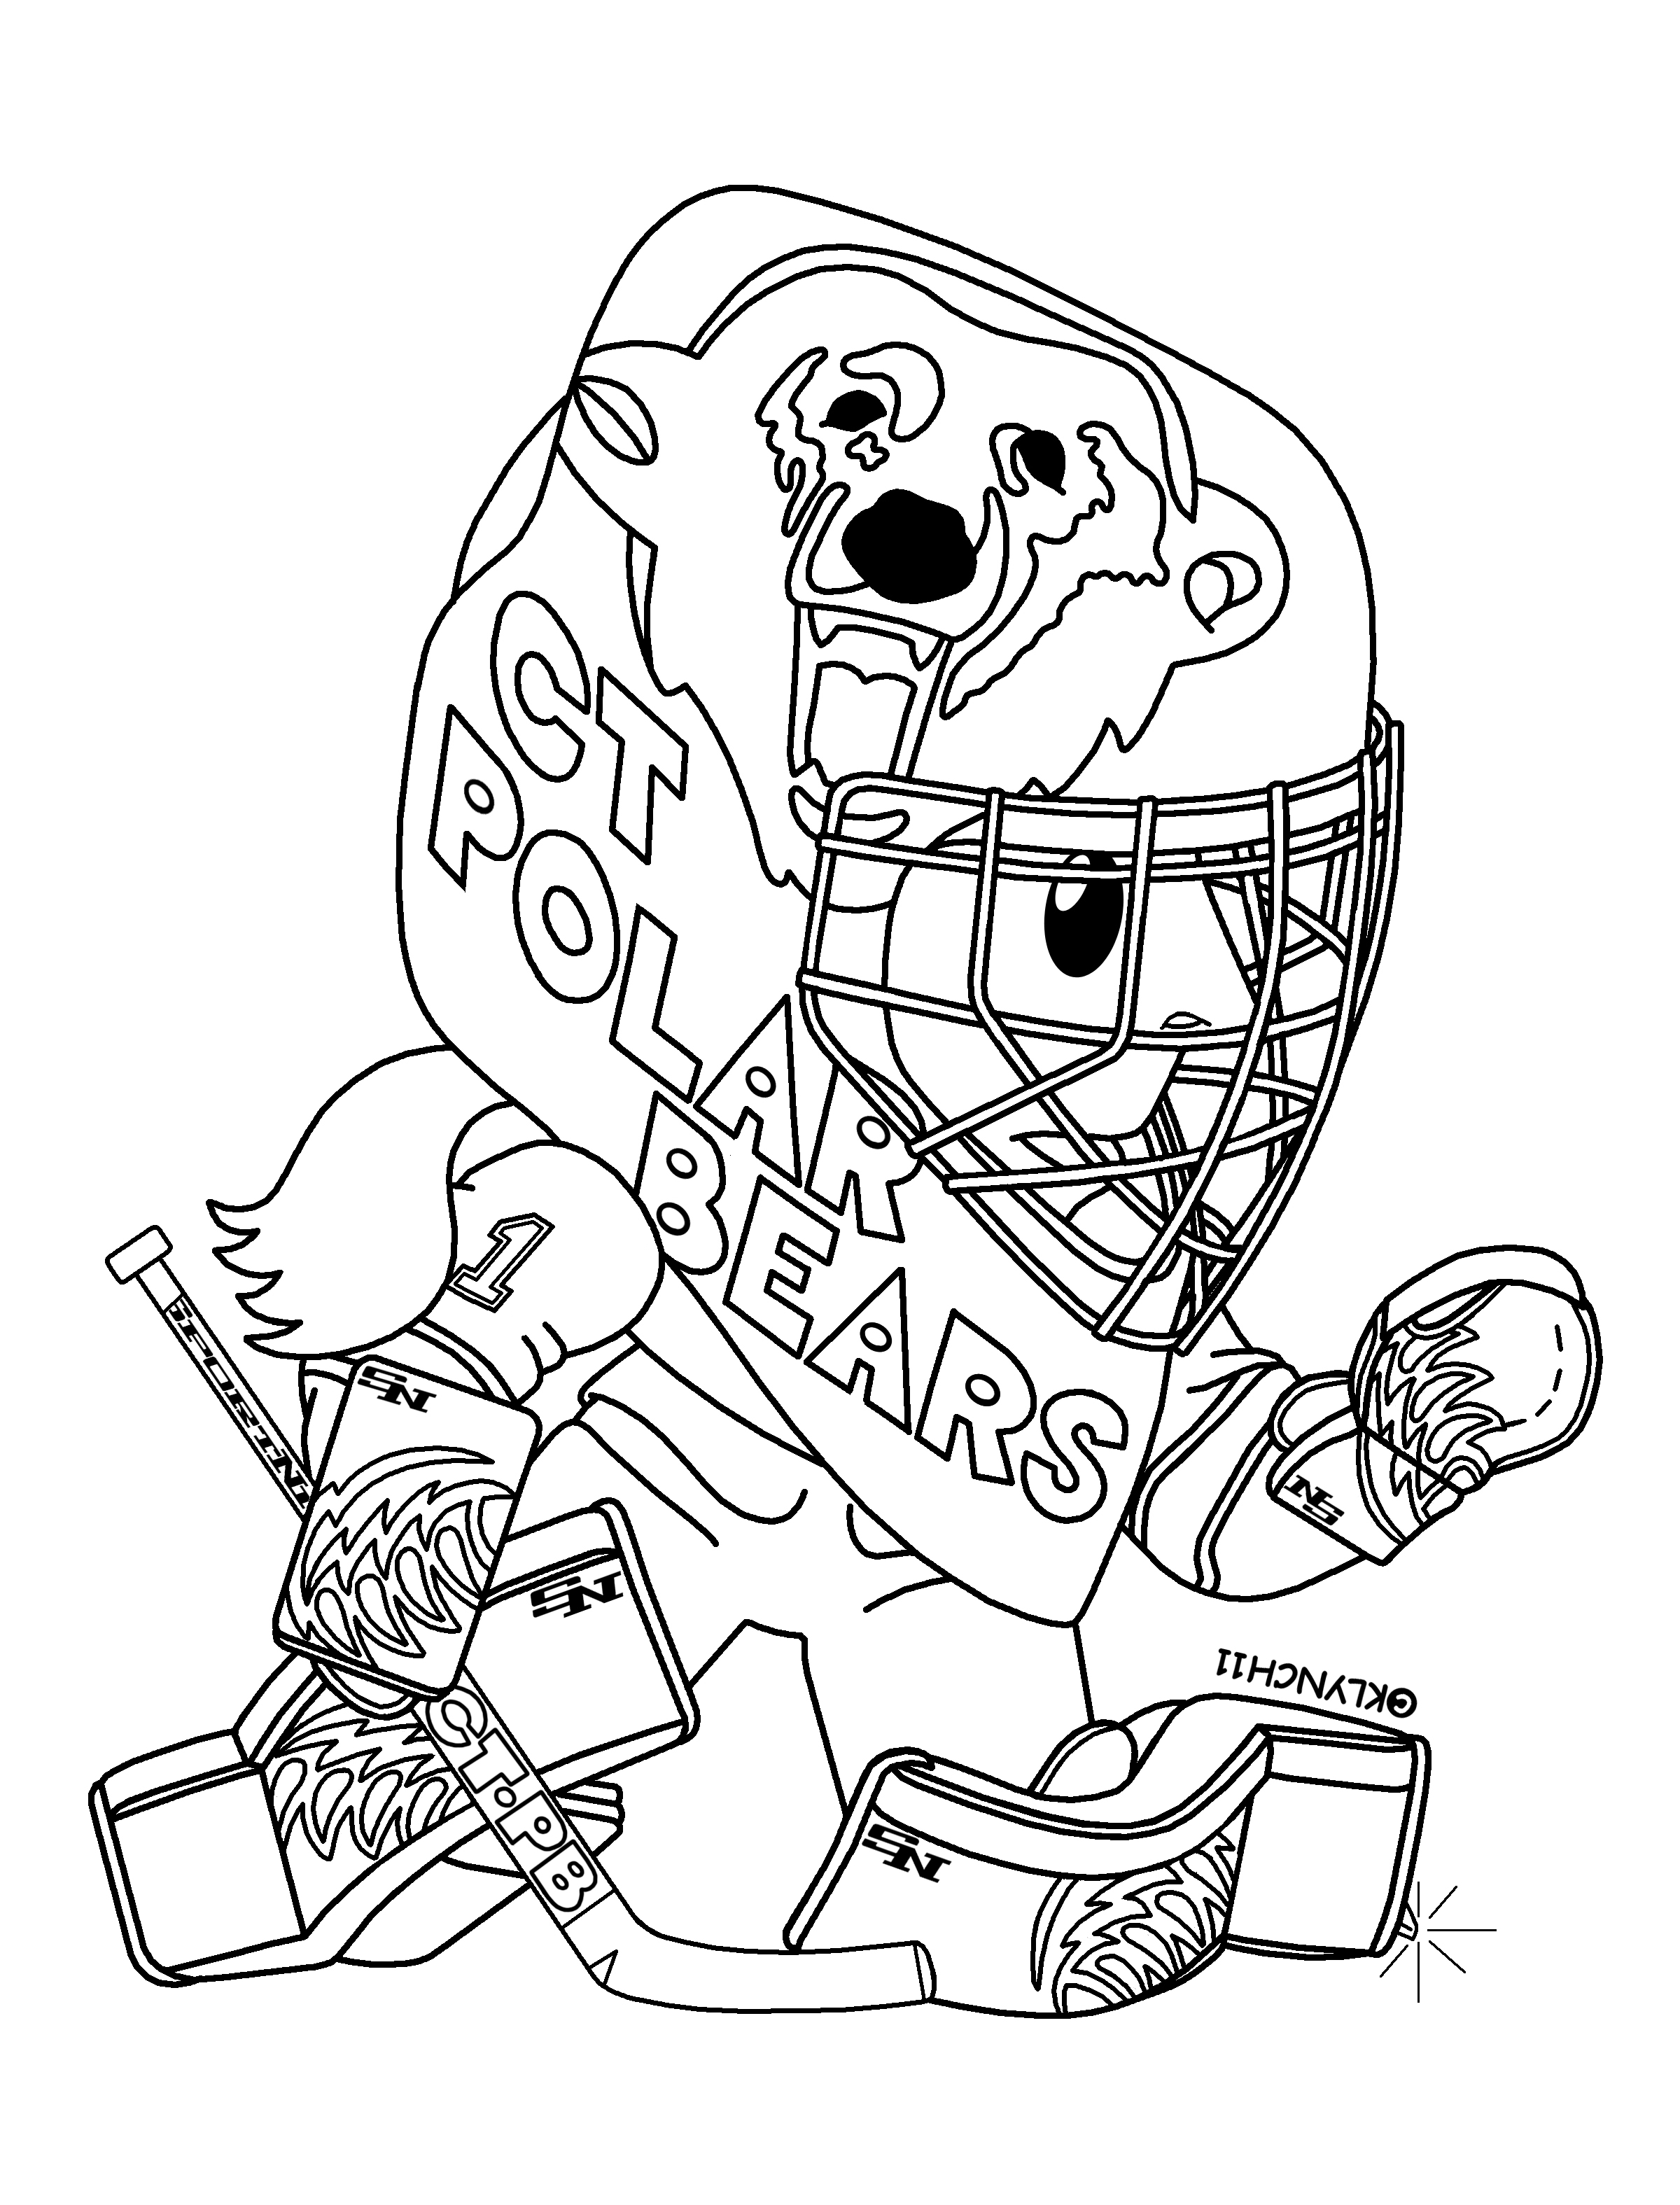 Drawn hockey goalie coloring pages - Dessin hockey ...